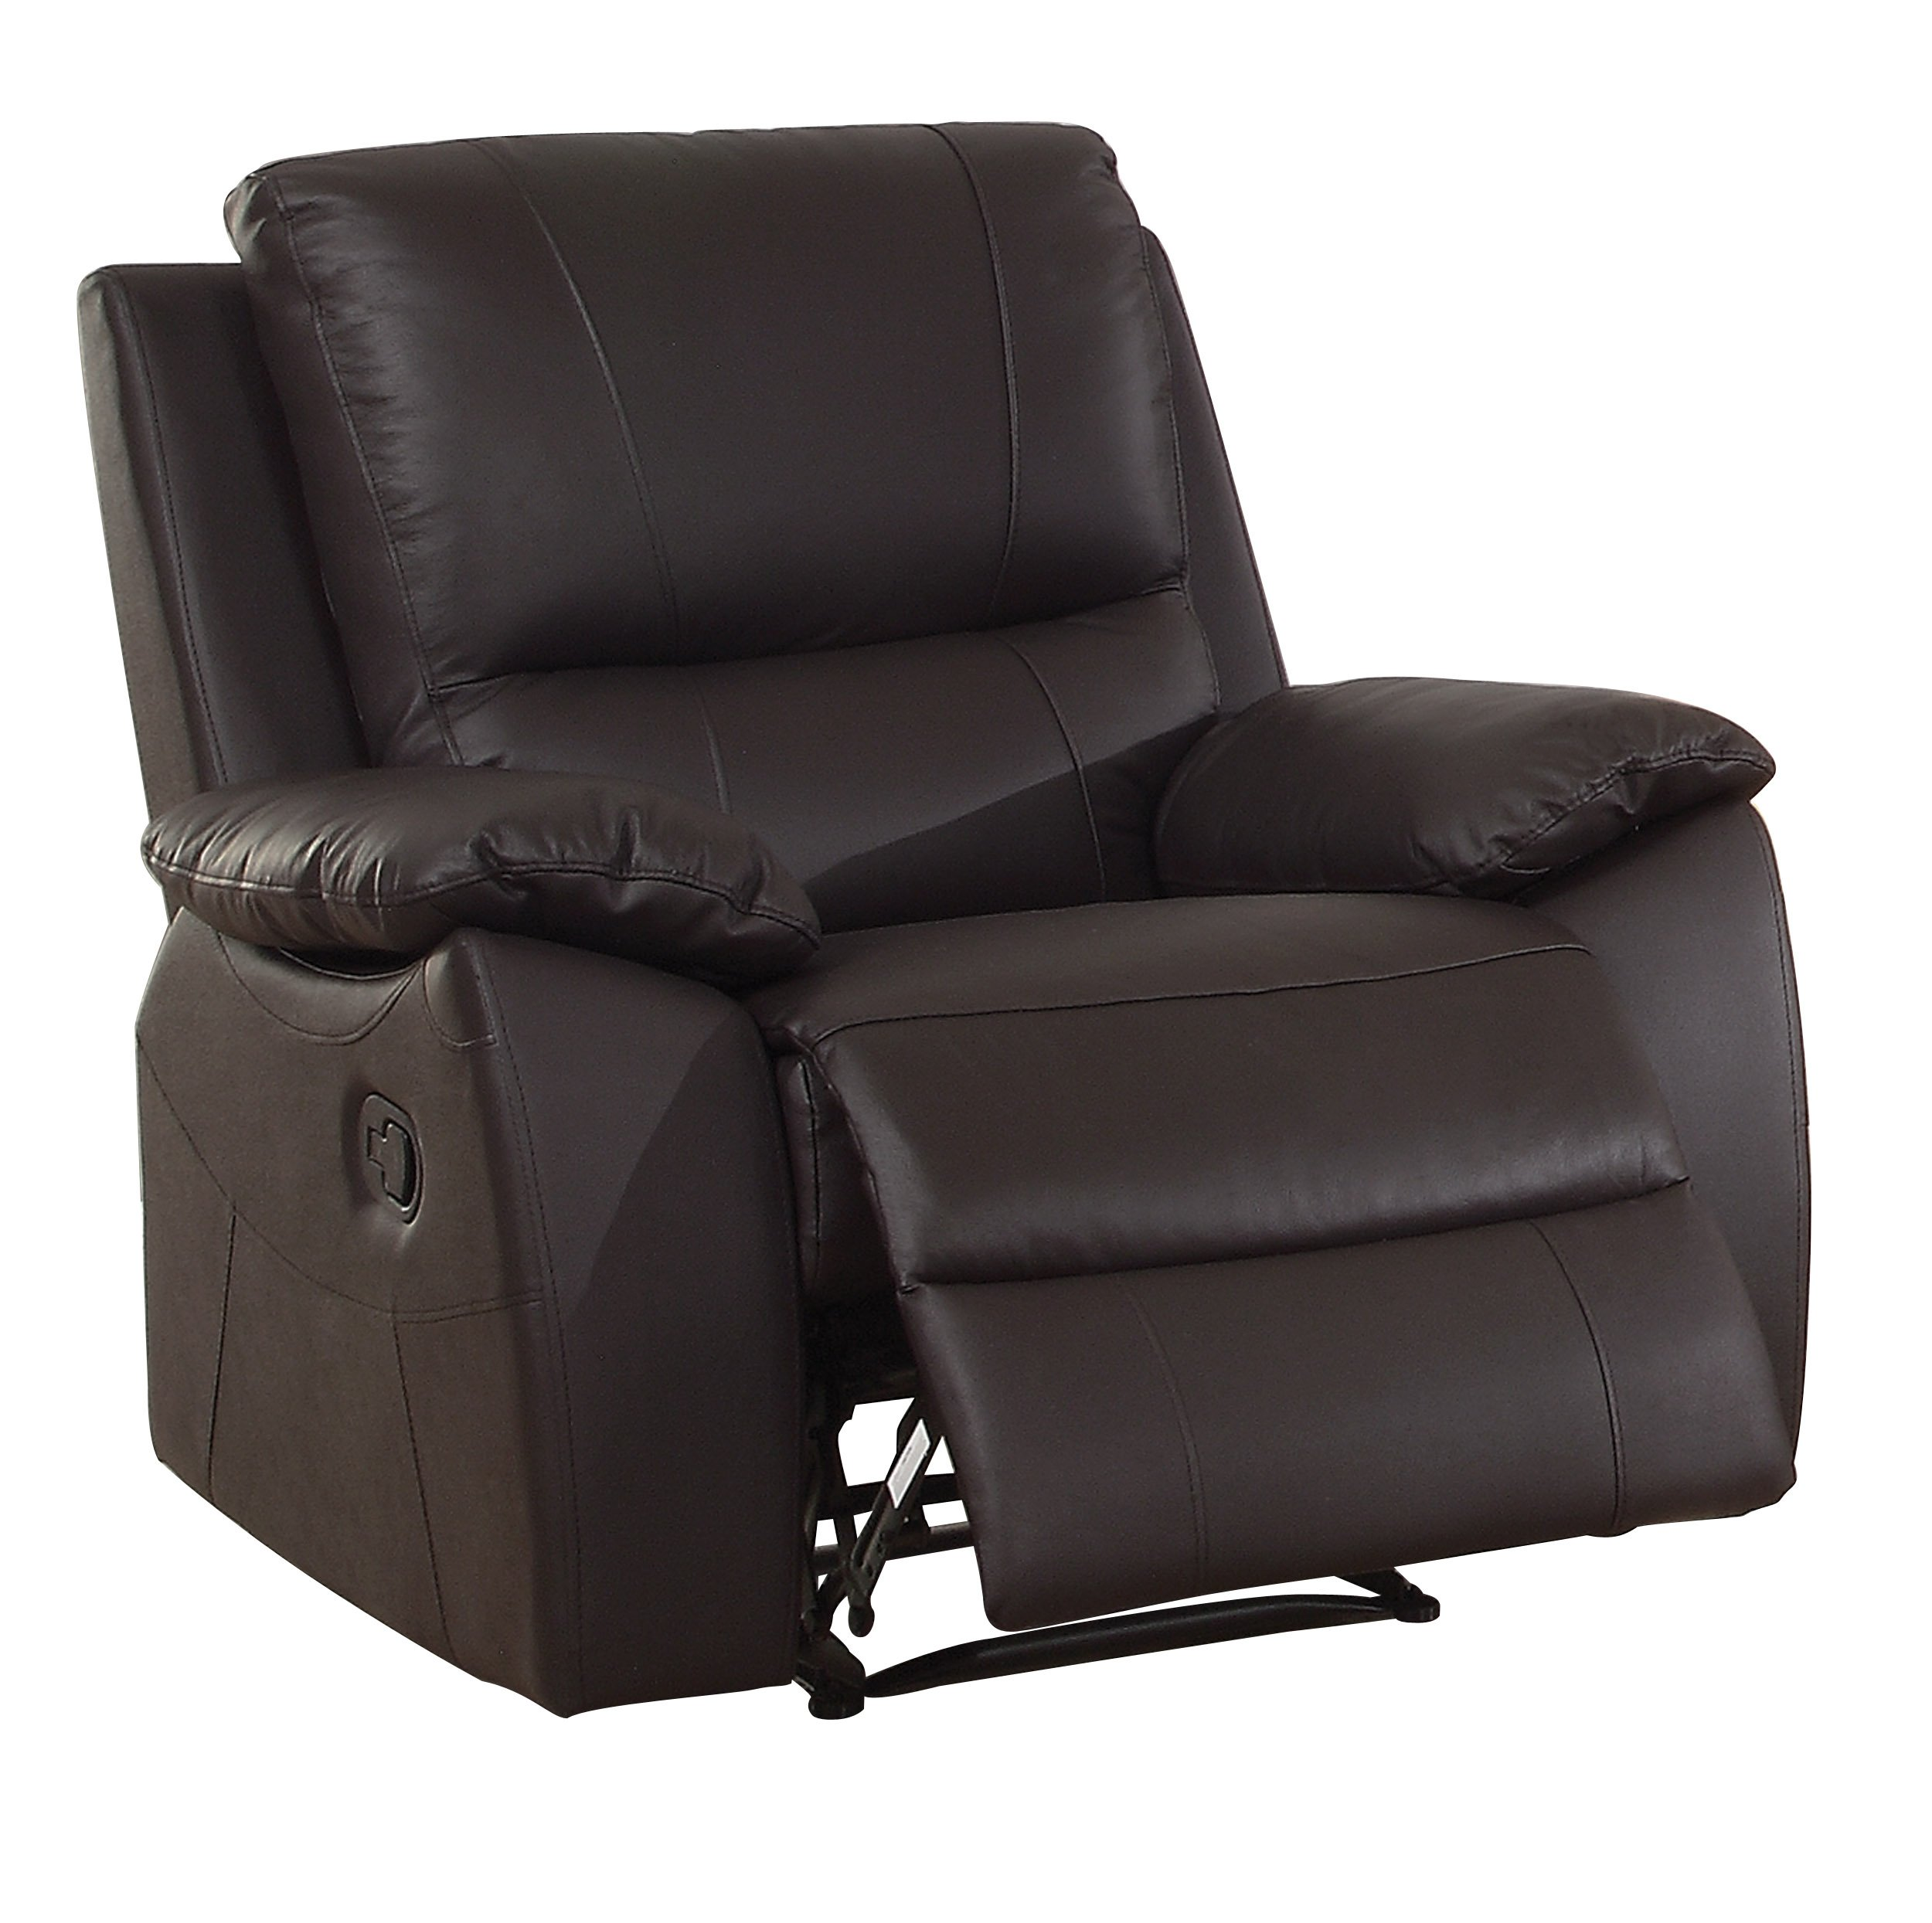 Homelegance Greeley Reclining Chair Top Grain Leather Match, Brown